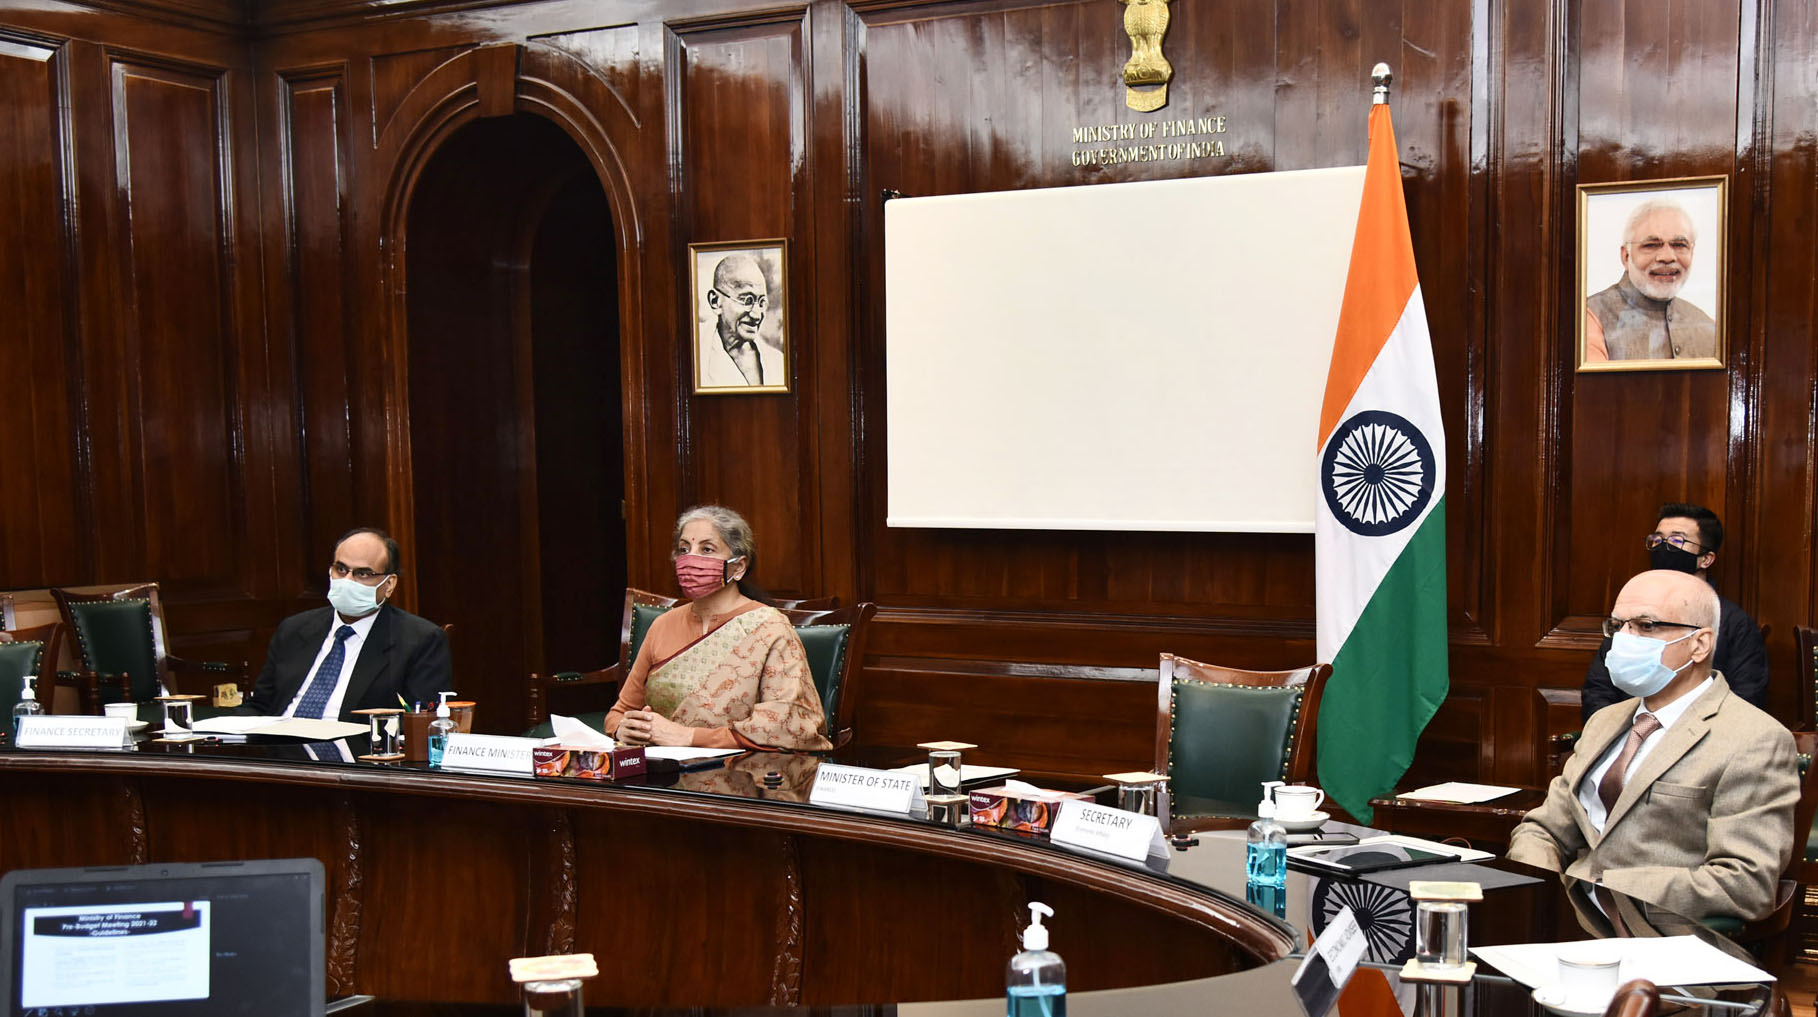 The Union Minister for Finance and Corporate Affairs, Smt. Nirmala Sitharaman chairing the Pre-Budget consultations with the leading experts in area of agriculture and agro processing industry, through video conferencing, in New Delhi on December 22, 2020.